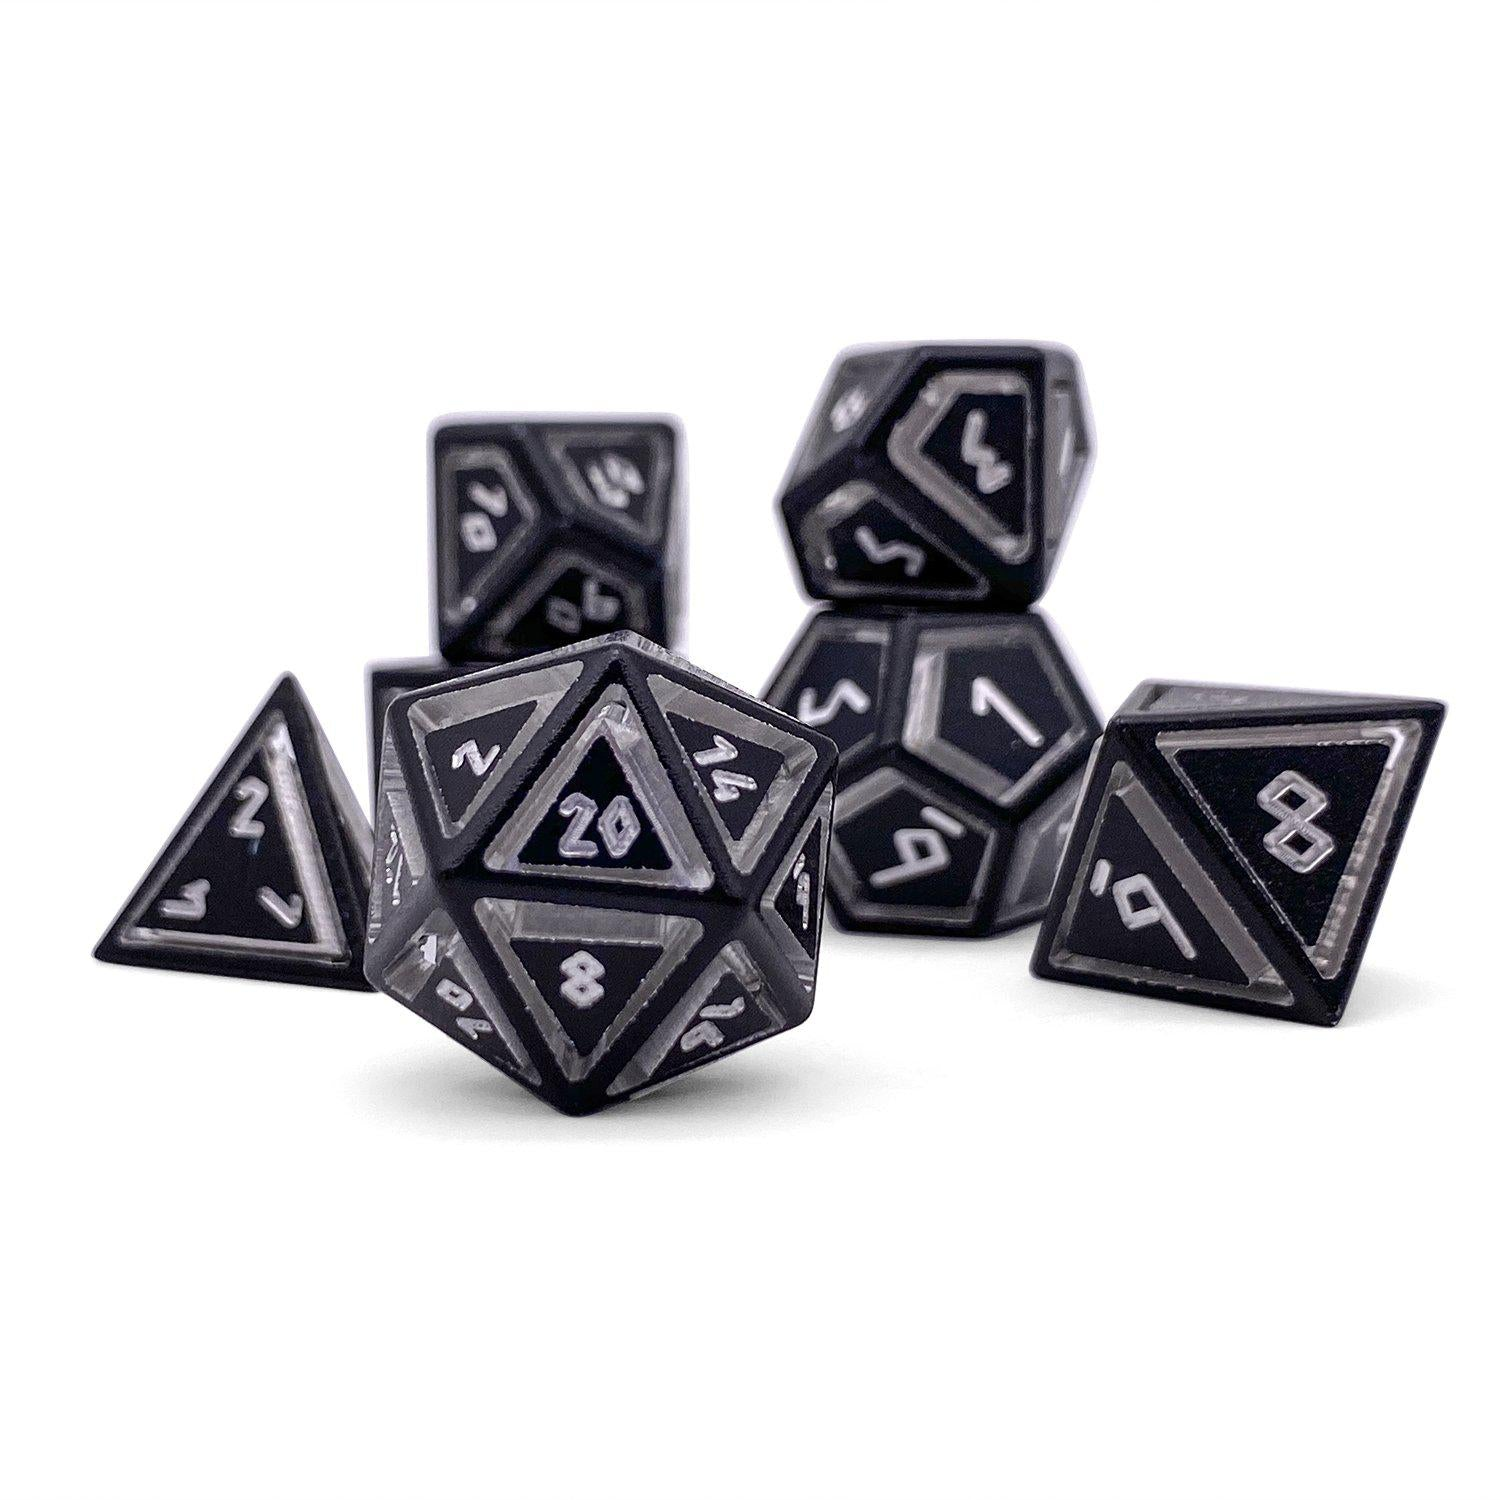 Nimbus Precision CNC Aluminum Dice Set Norse Font - Night Black